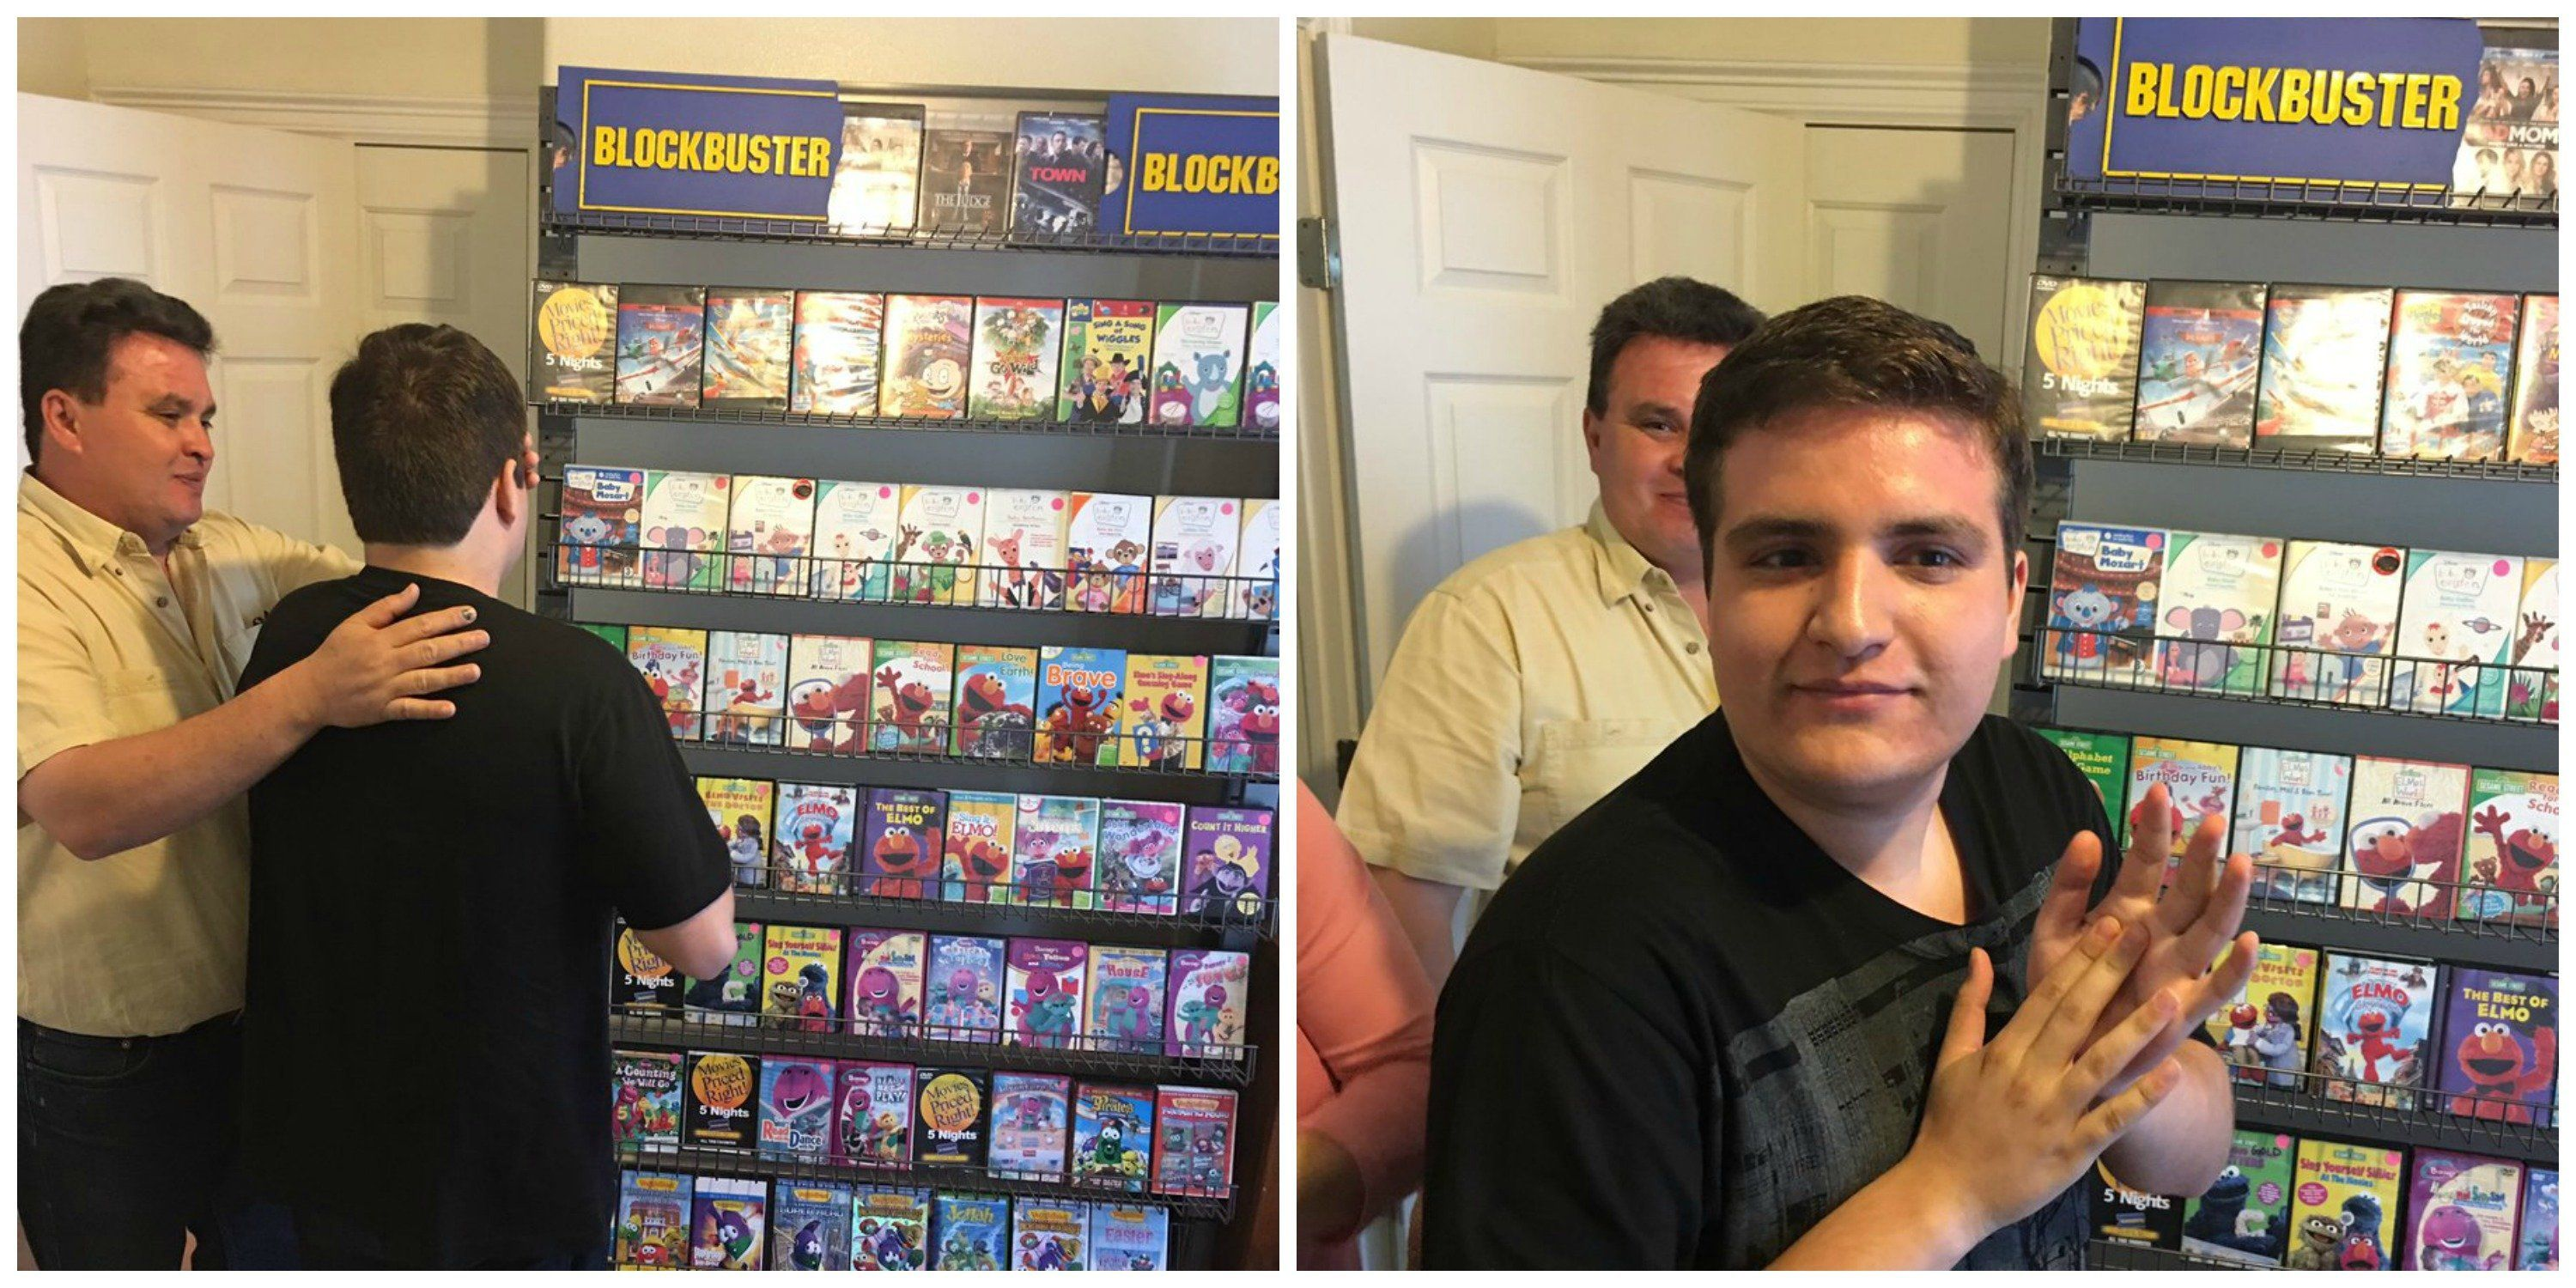 Hector's fatherreveals the at-home Blockbuster to his son.